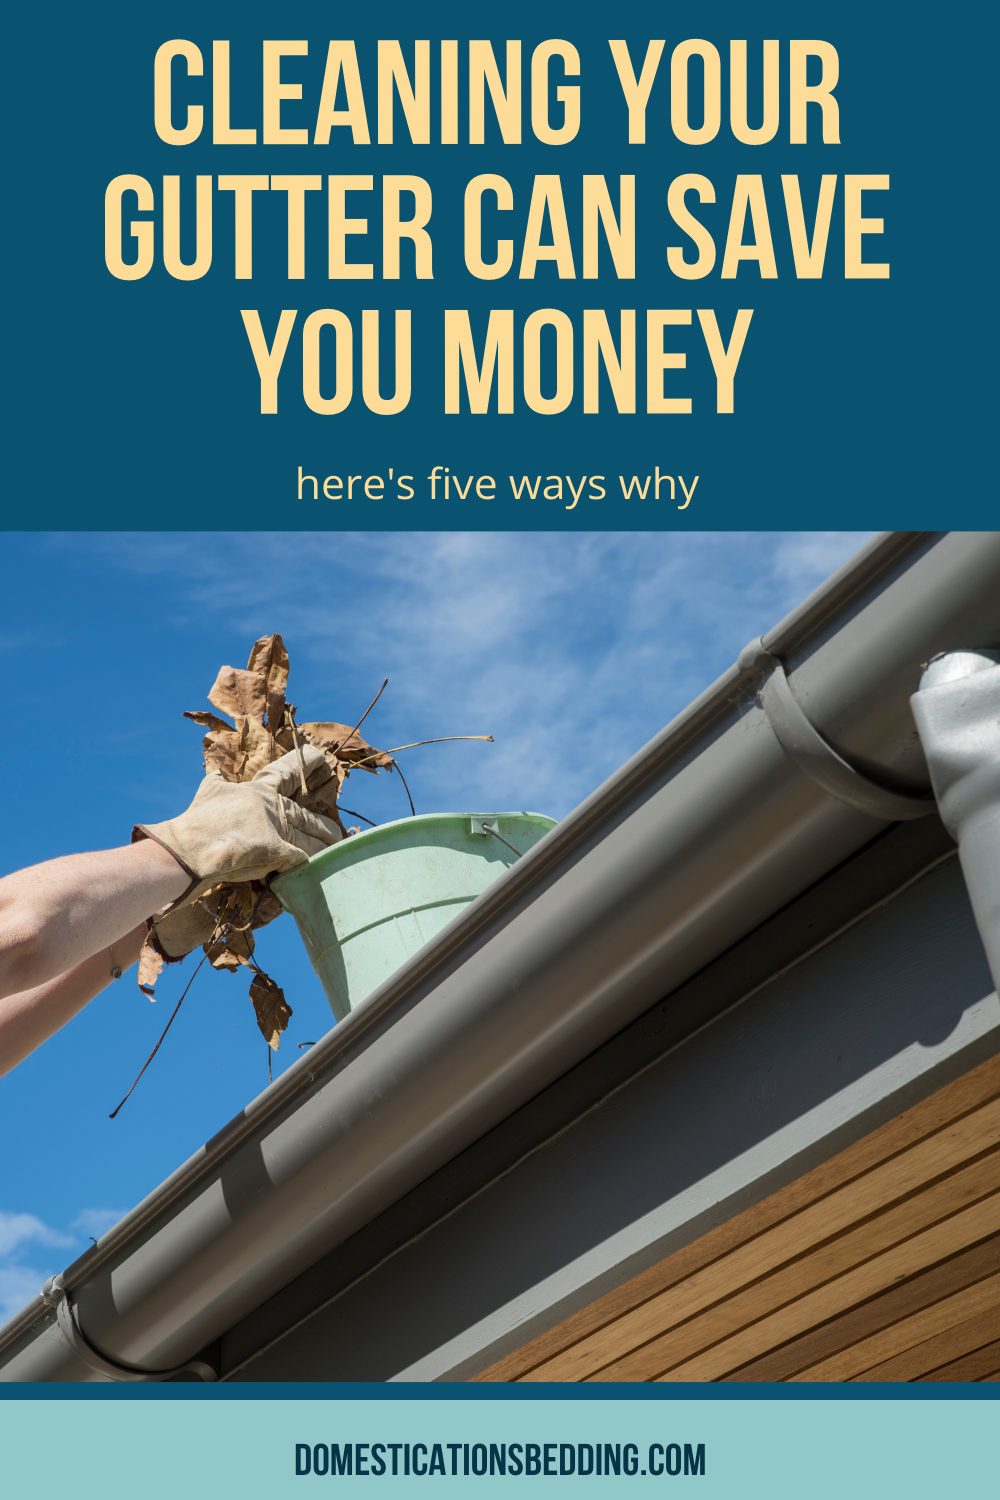 5 Ways Gutter Cleaning Can Save You Money on Roof and Gutter Repair